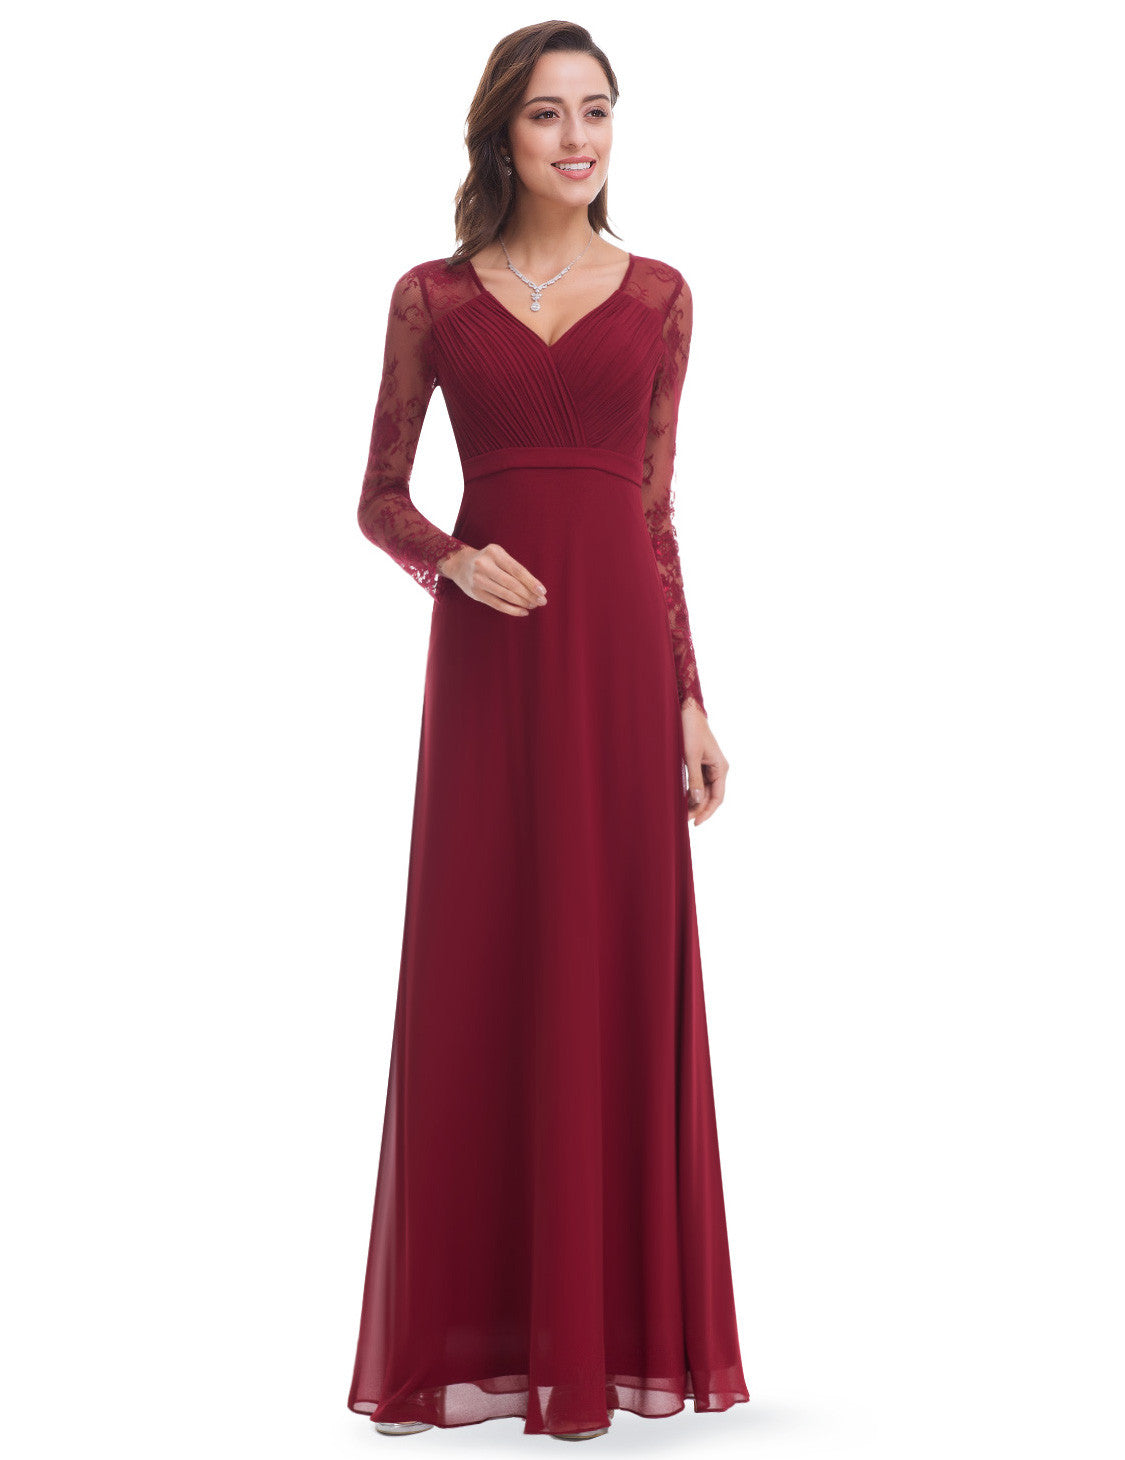 Obeige Burgundy Elegant V-neck Long Sleeve Evening Dress